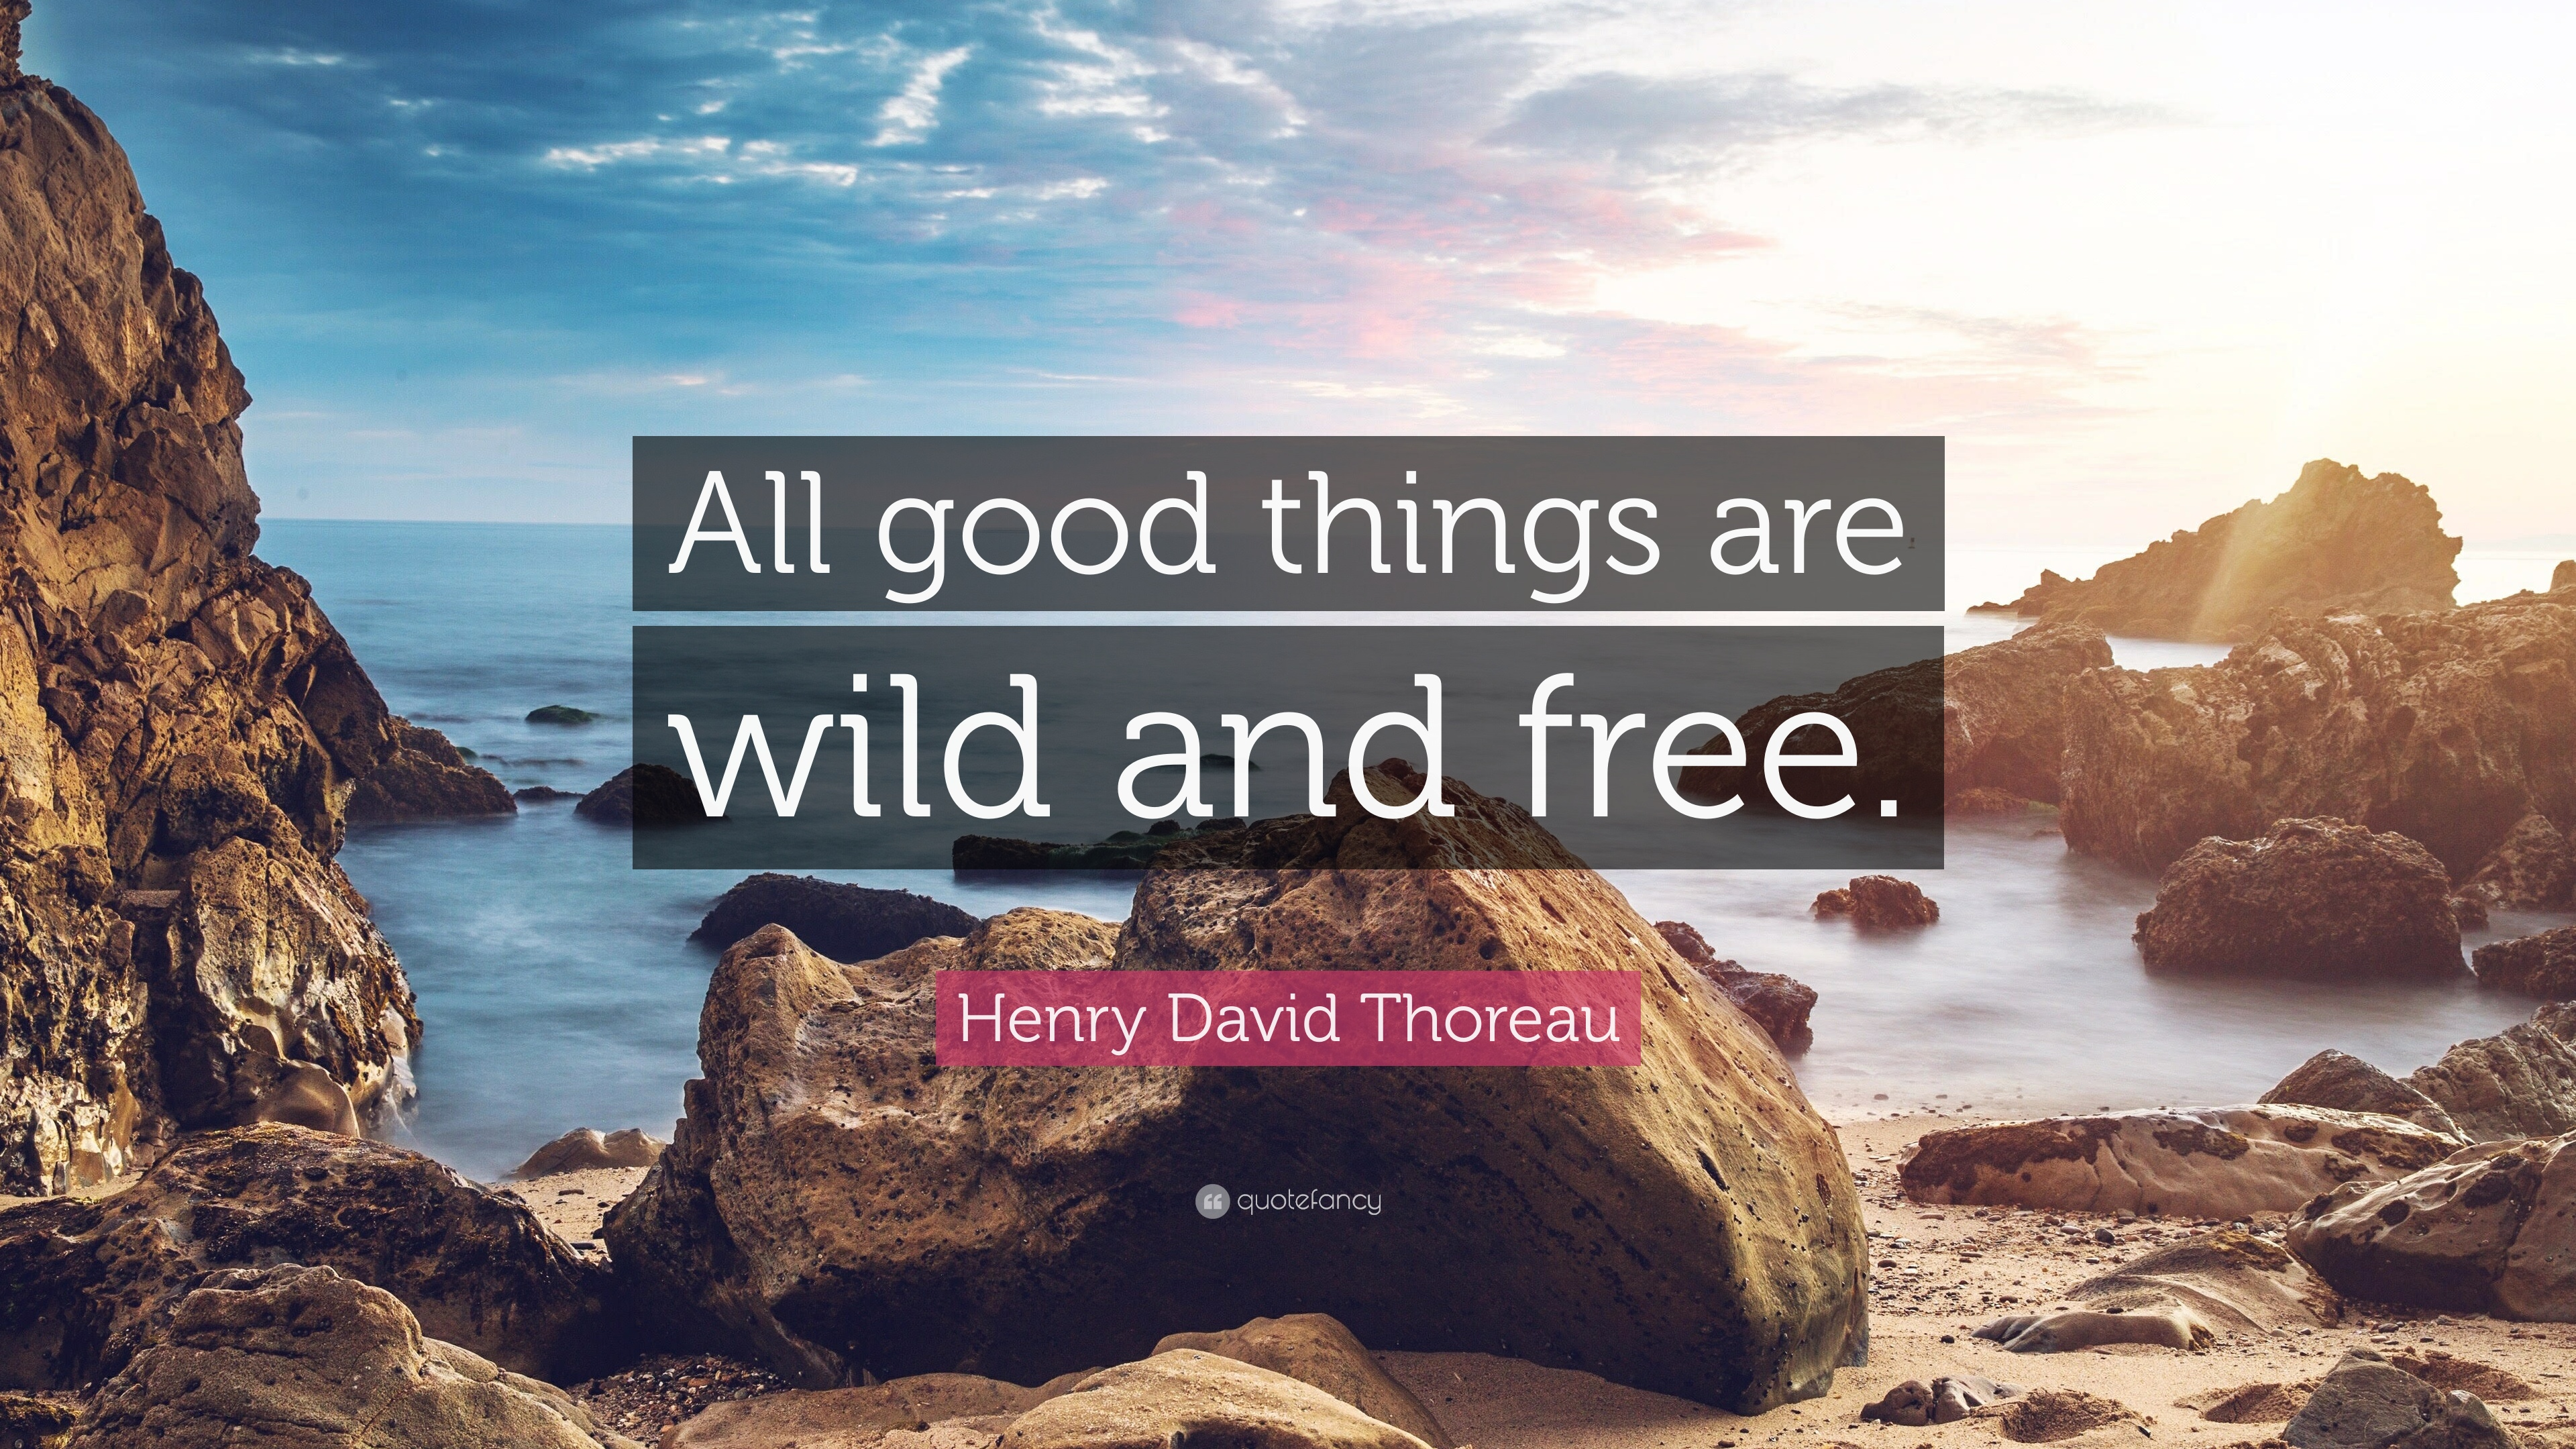 Friendship Quote Wallpapers Free Henry David Thoreau Quote All Good Things Are Wild And